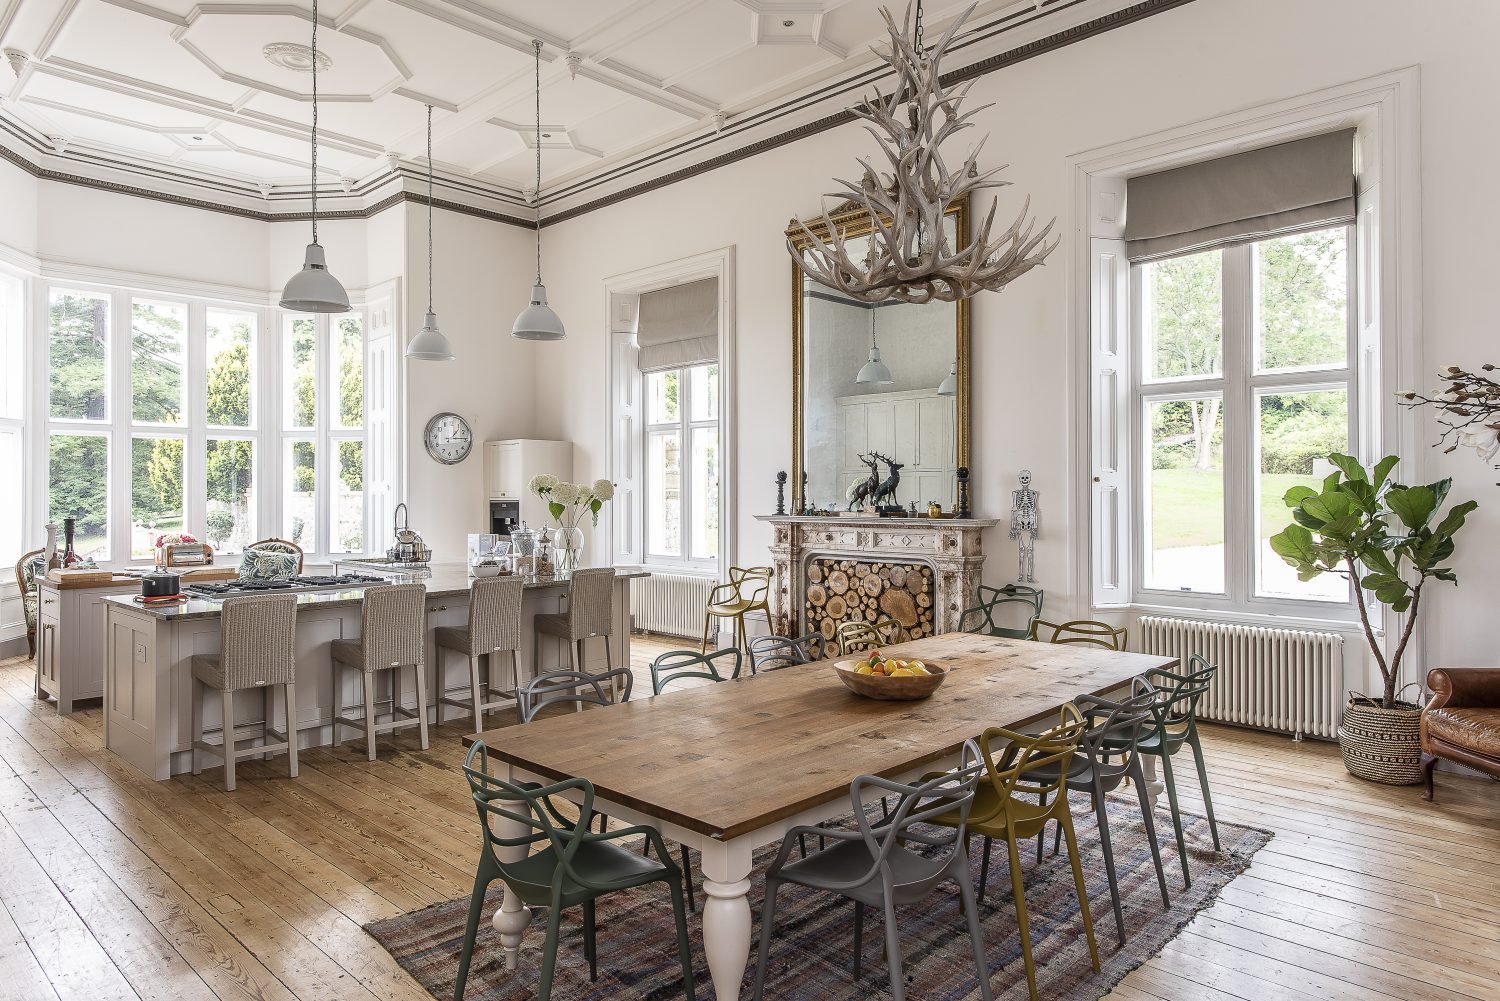 The kitchen had once been the library. Jaime stripped back the tooled leather wallpaper and pulled down 1970s partitions and stud walls to bring back the sense of scale from the original floor plan. The room's original features include a wonderful ornate plaster ceiling, huge windows and original shutters and an impressive veined marble fireplace